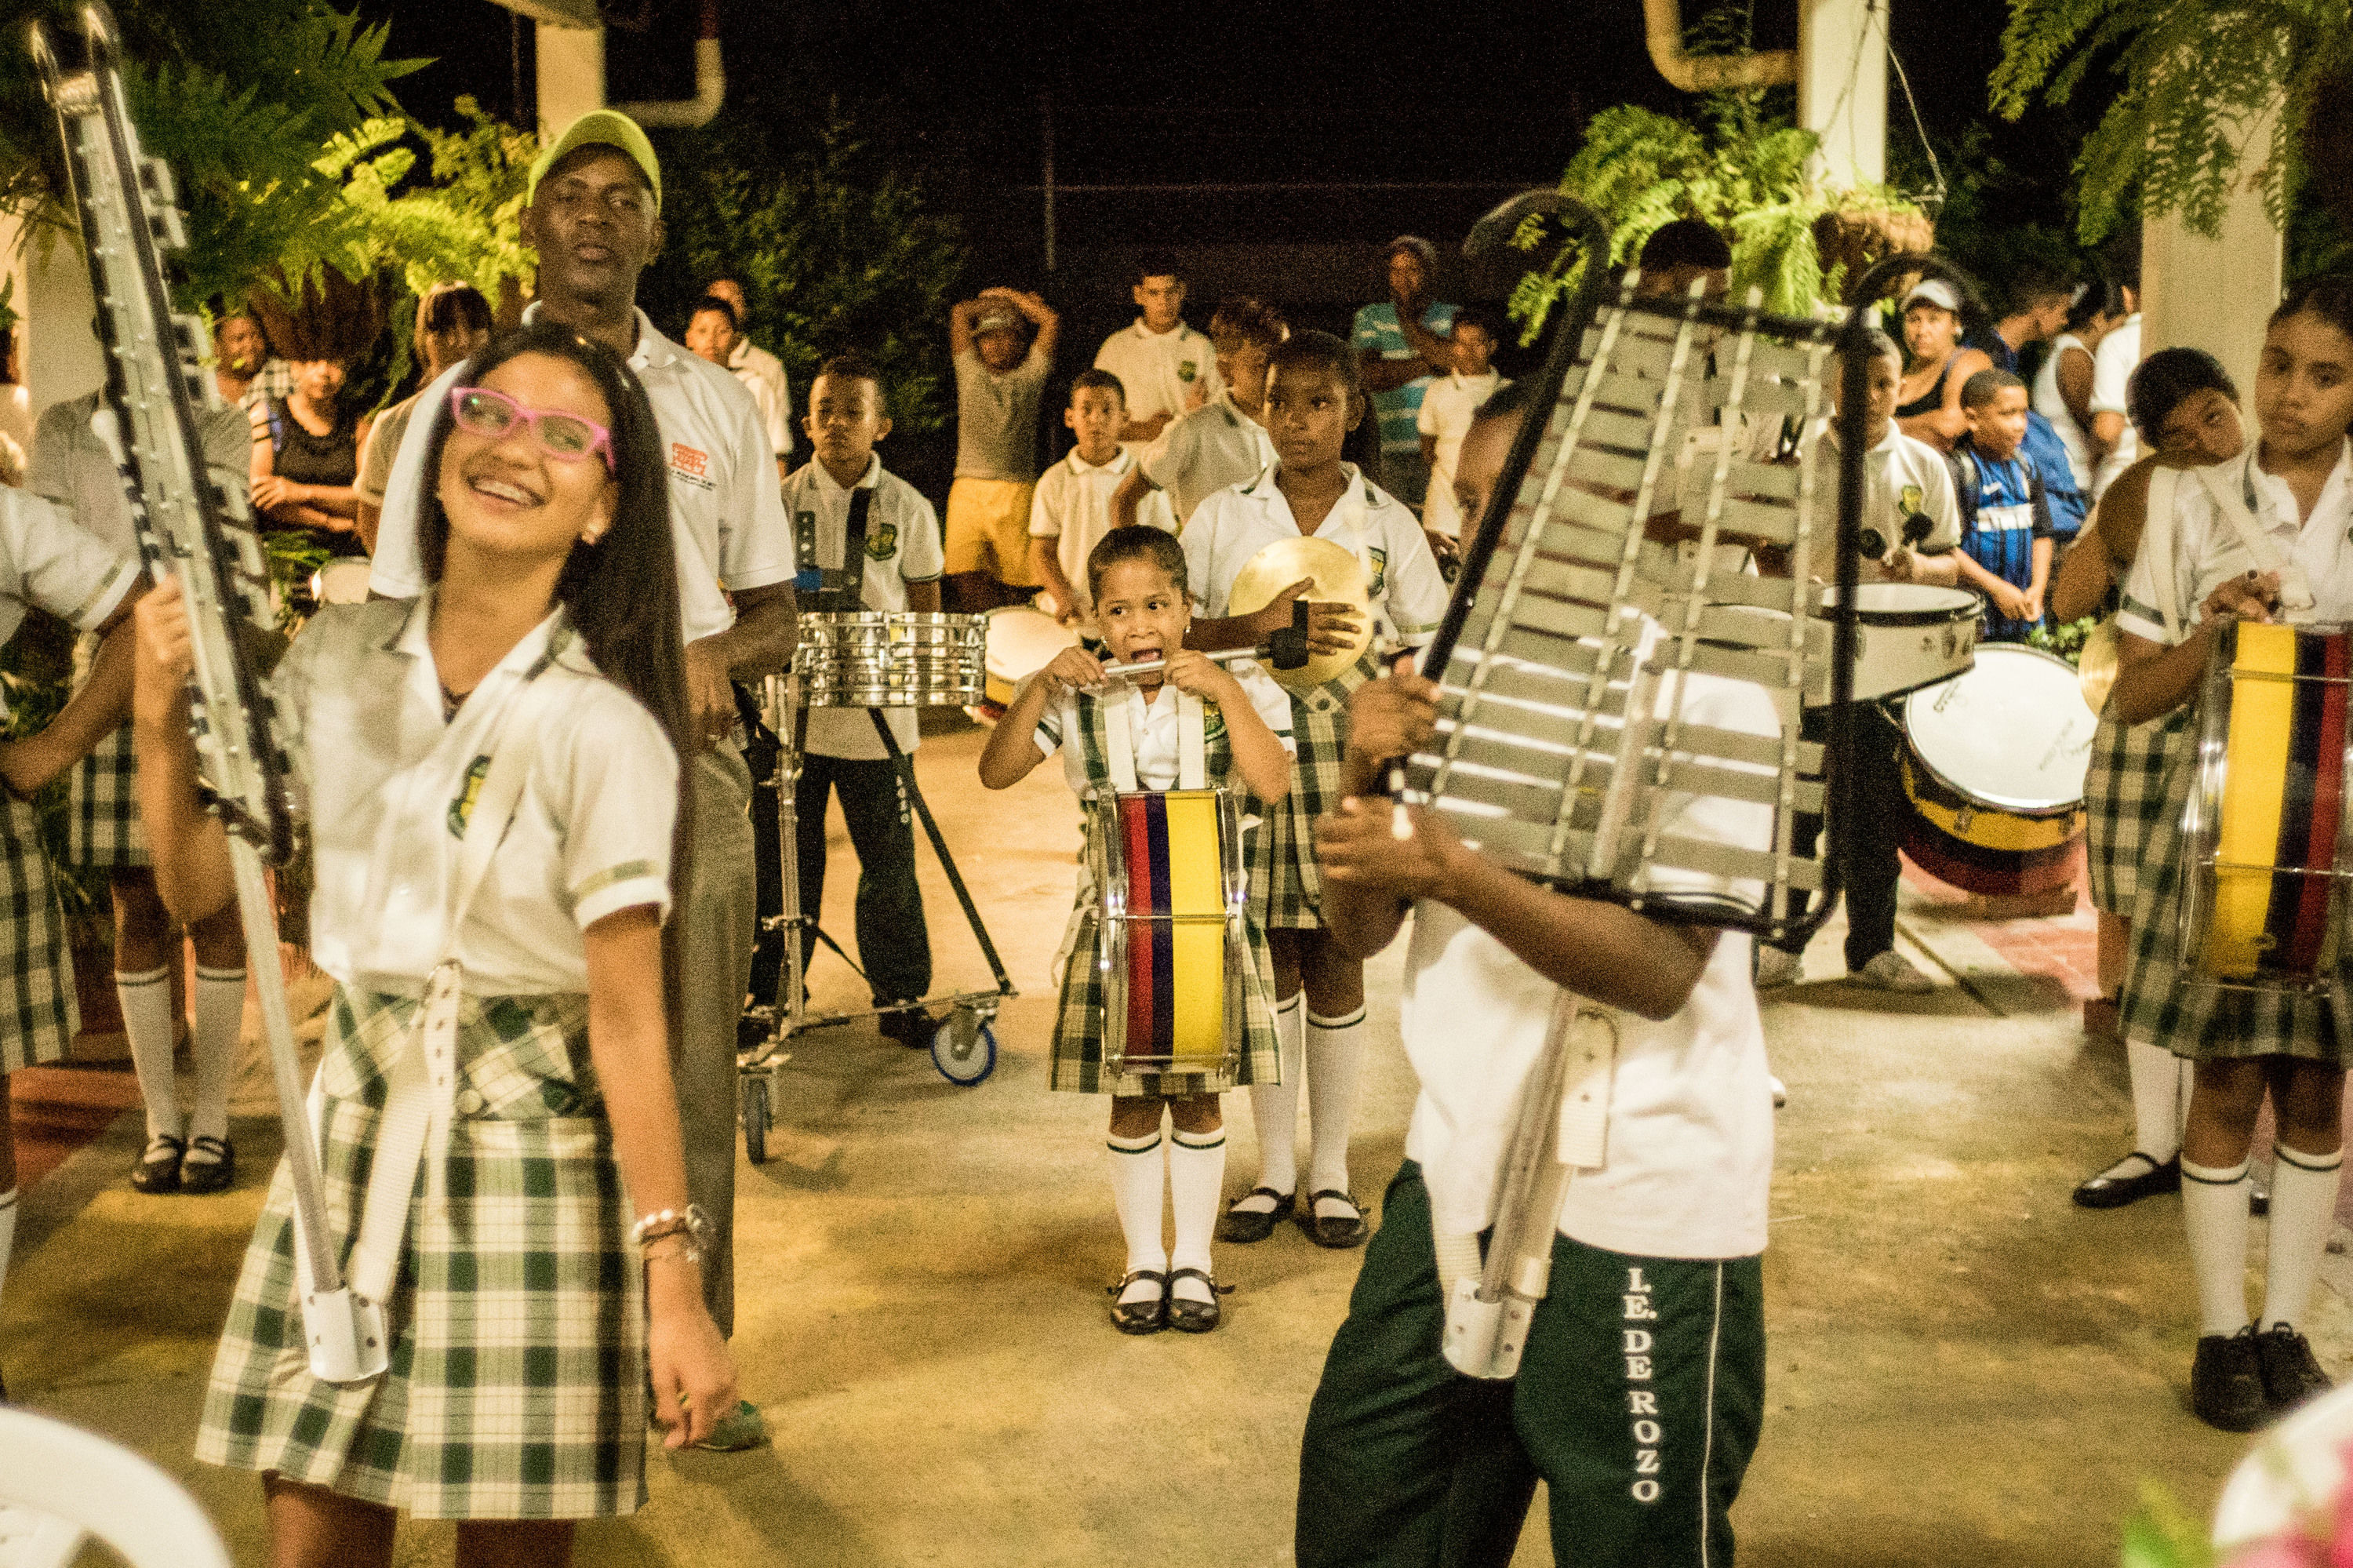 Inter Campus Colombia and the sound of drums